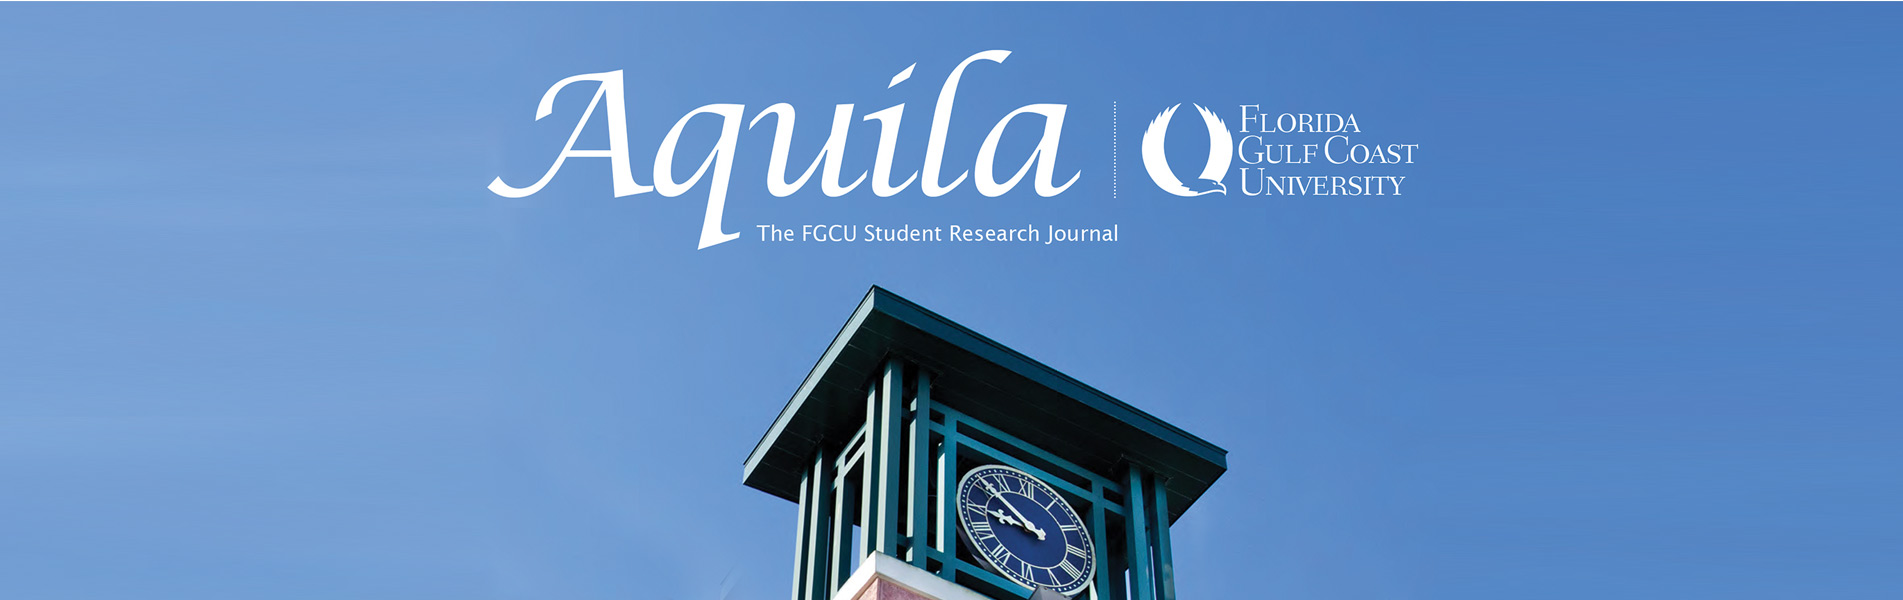 FGCU Student Success - Aquila